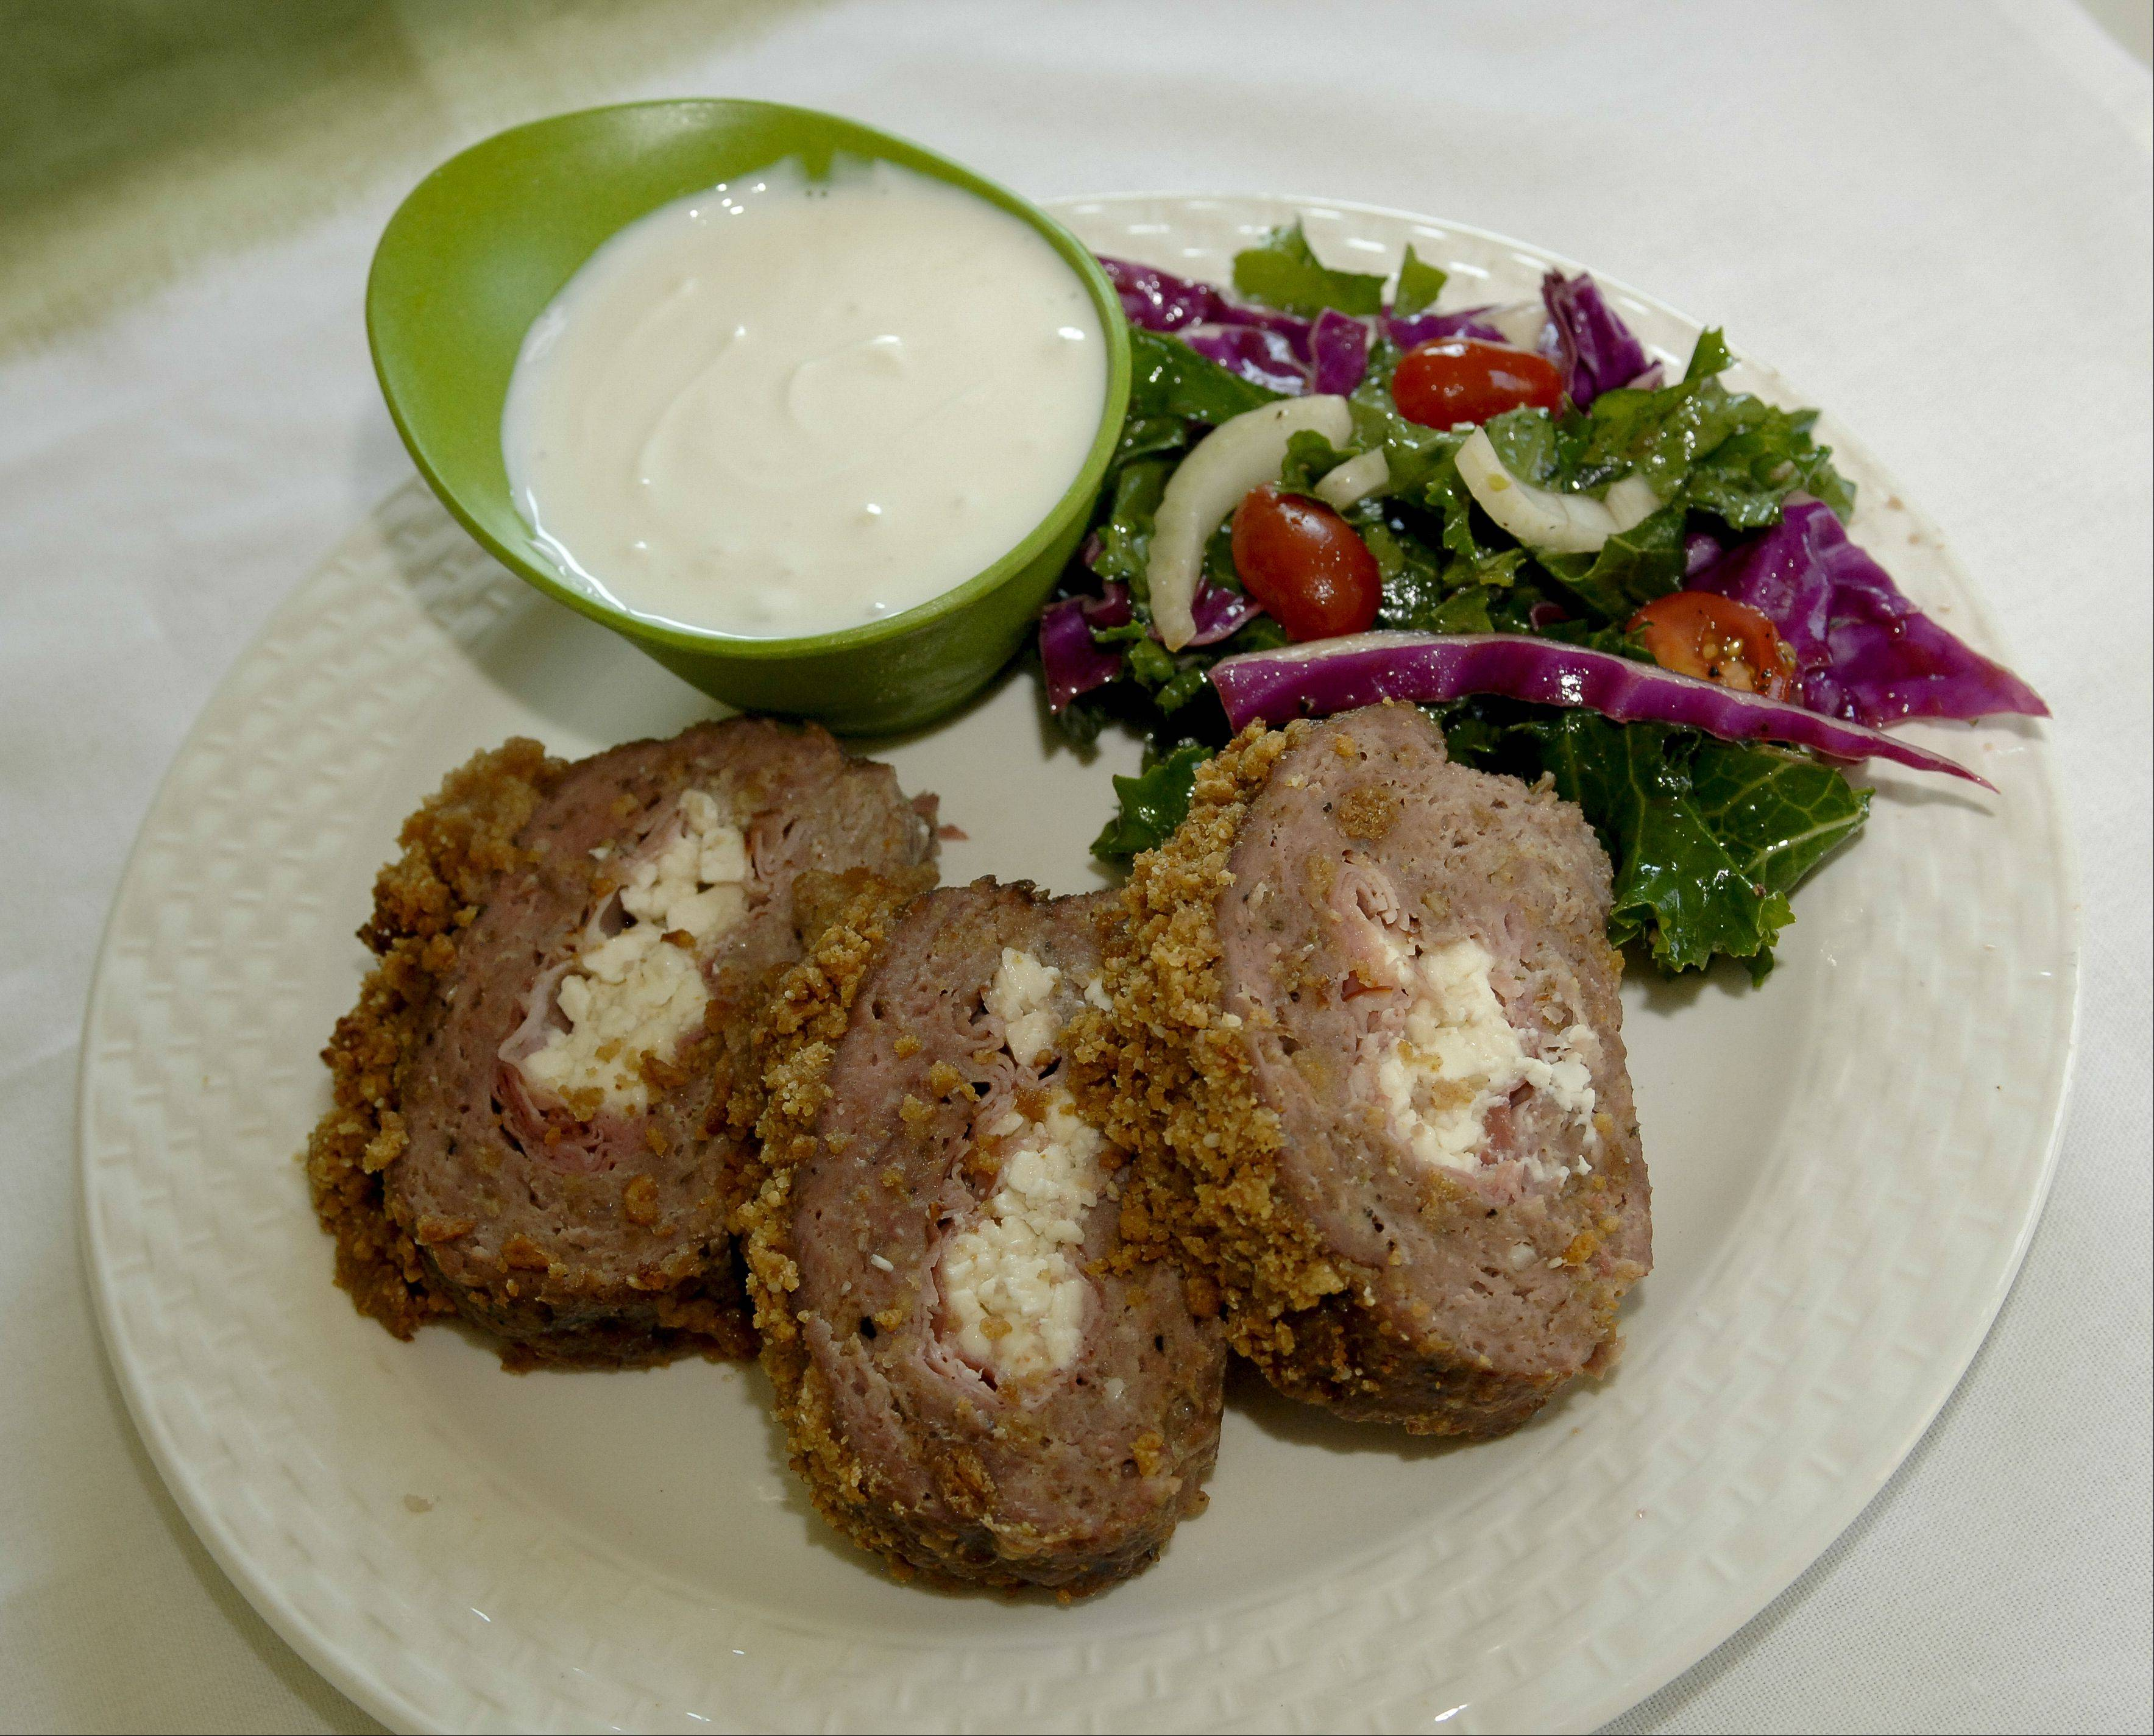 Cook of the Week challenge contestant Judy Monaco created a meatloaf using ground lamb and sesame snack sticks. She serves it with red cabbage and kale salad.